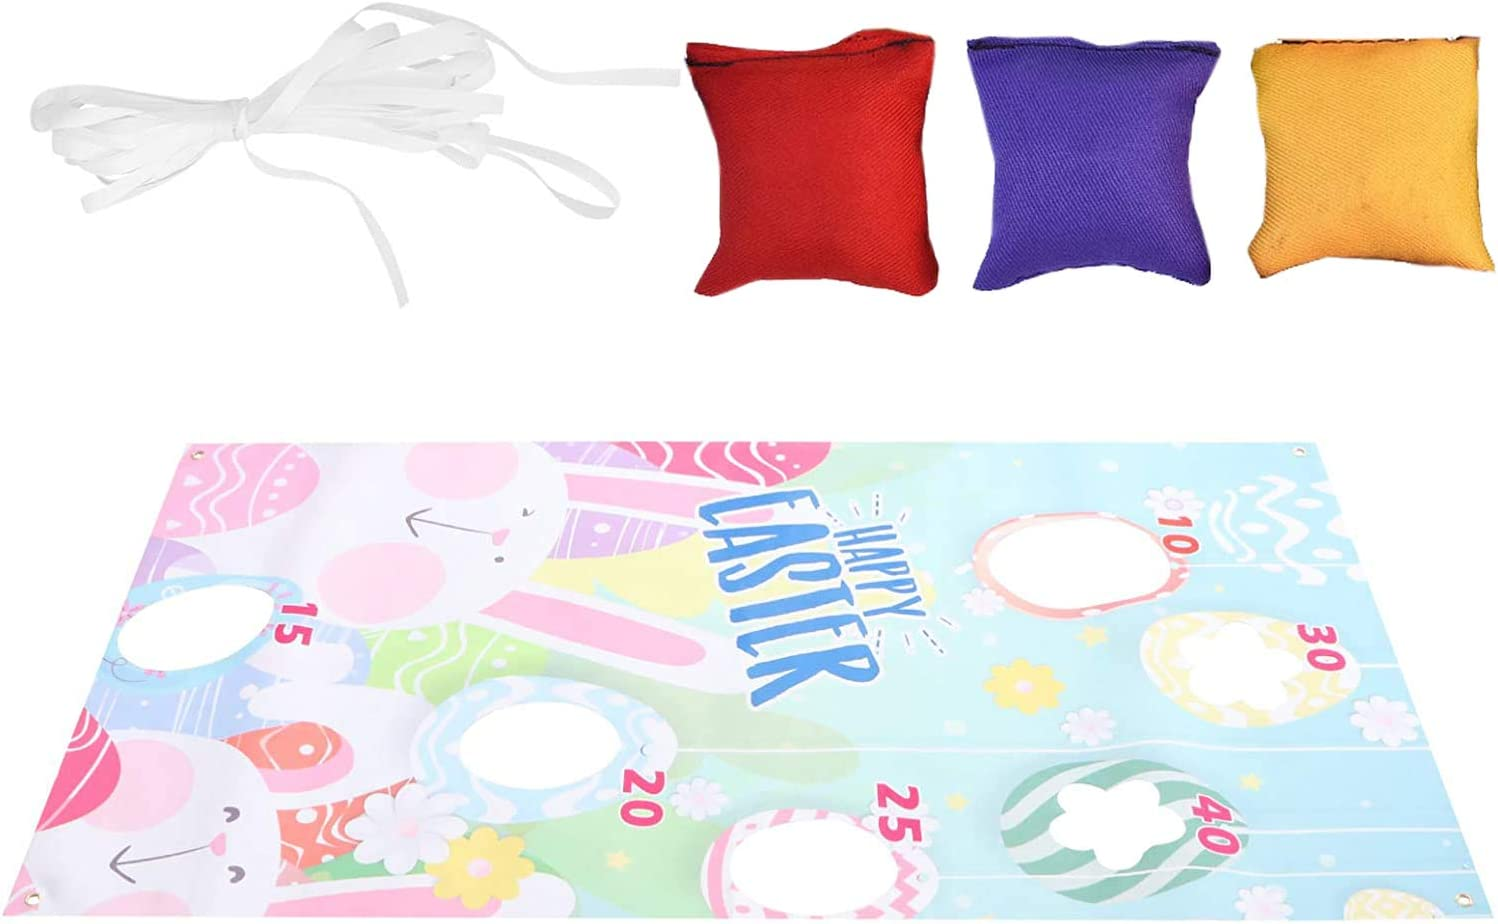 A KENG Easter Toss Game with 3 Bean Bags Throwing Game for Kids Adults Easter Bunny Backdrop Hanging Toss Games Fun Party Supplies Toys Birthday Easter Party Supplies and Easter Decorations